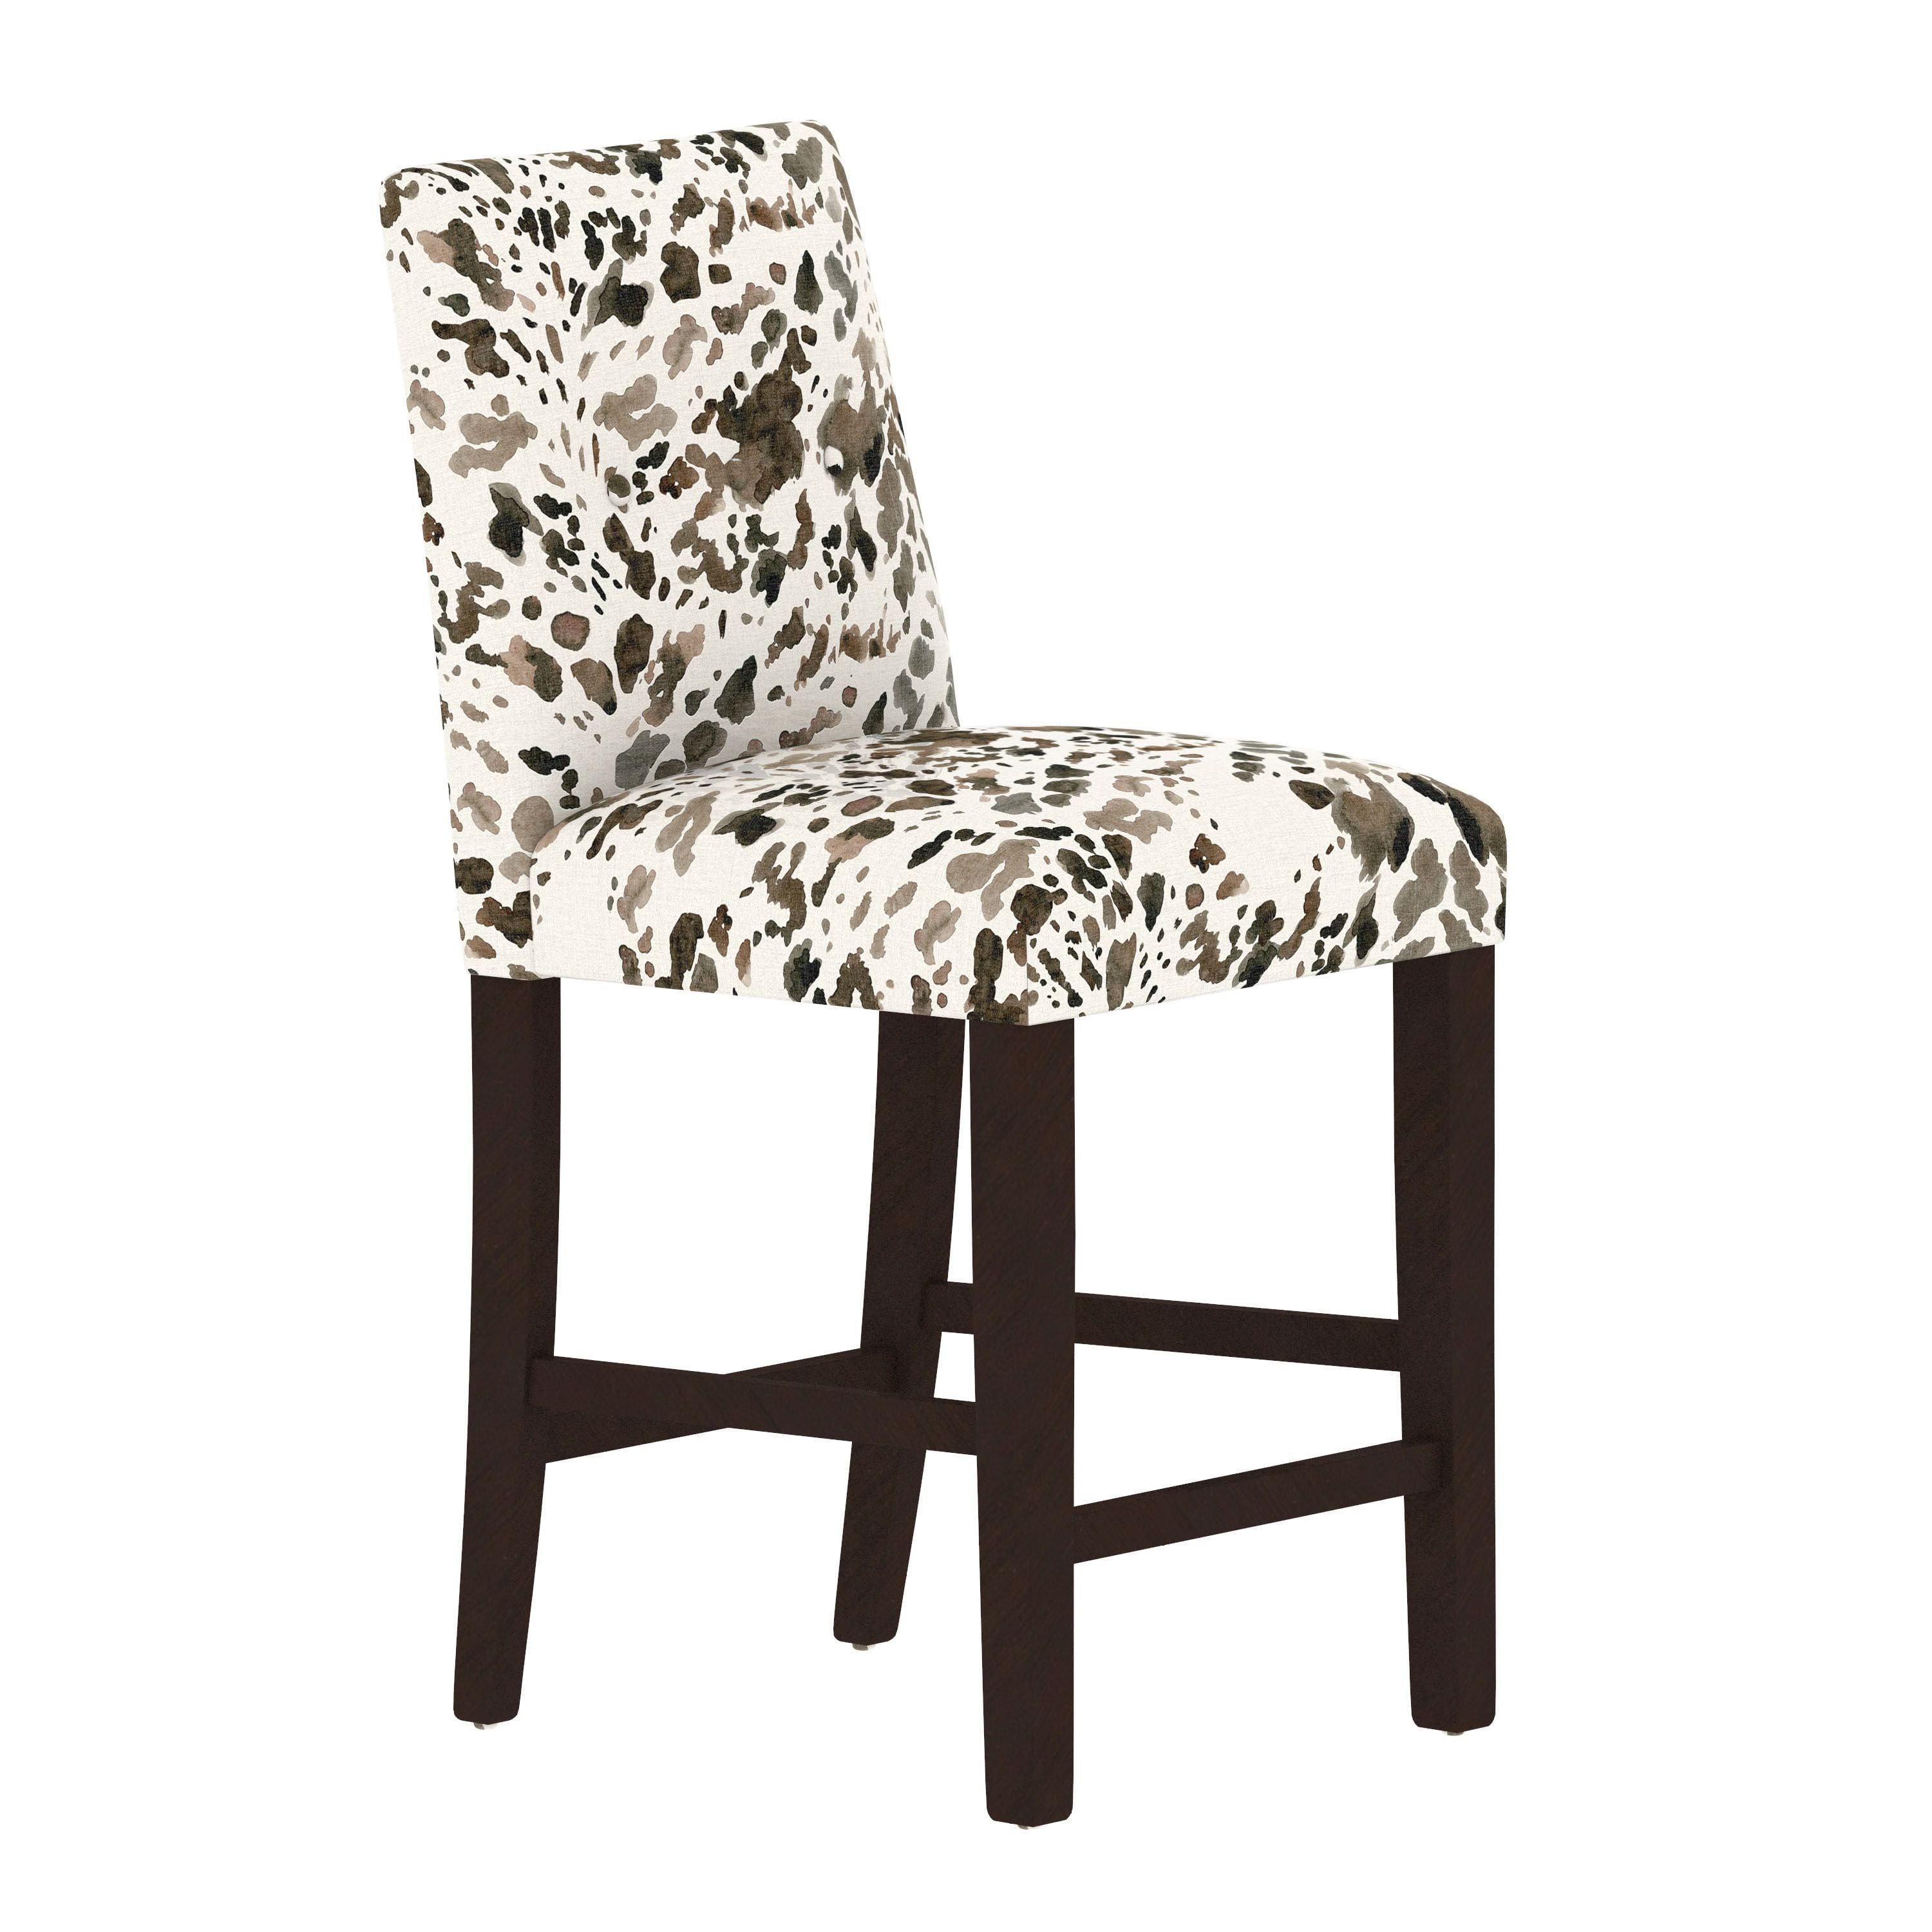 Tremendous Skyline Furniture Custom Counter Stool With Buttons In Ncnpc Chair Design For Home Ncnpcorg